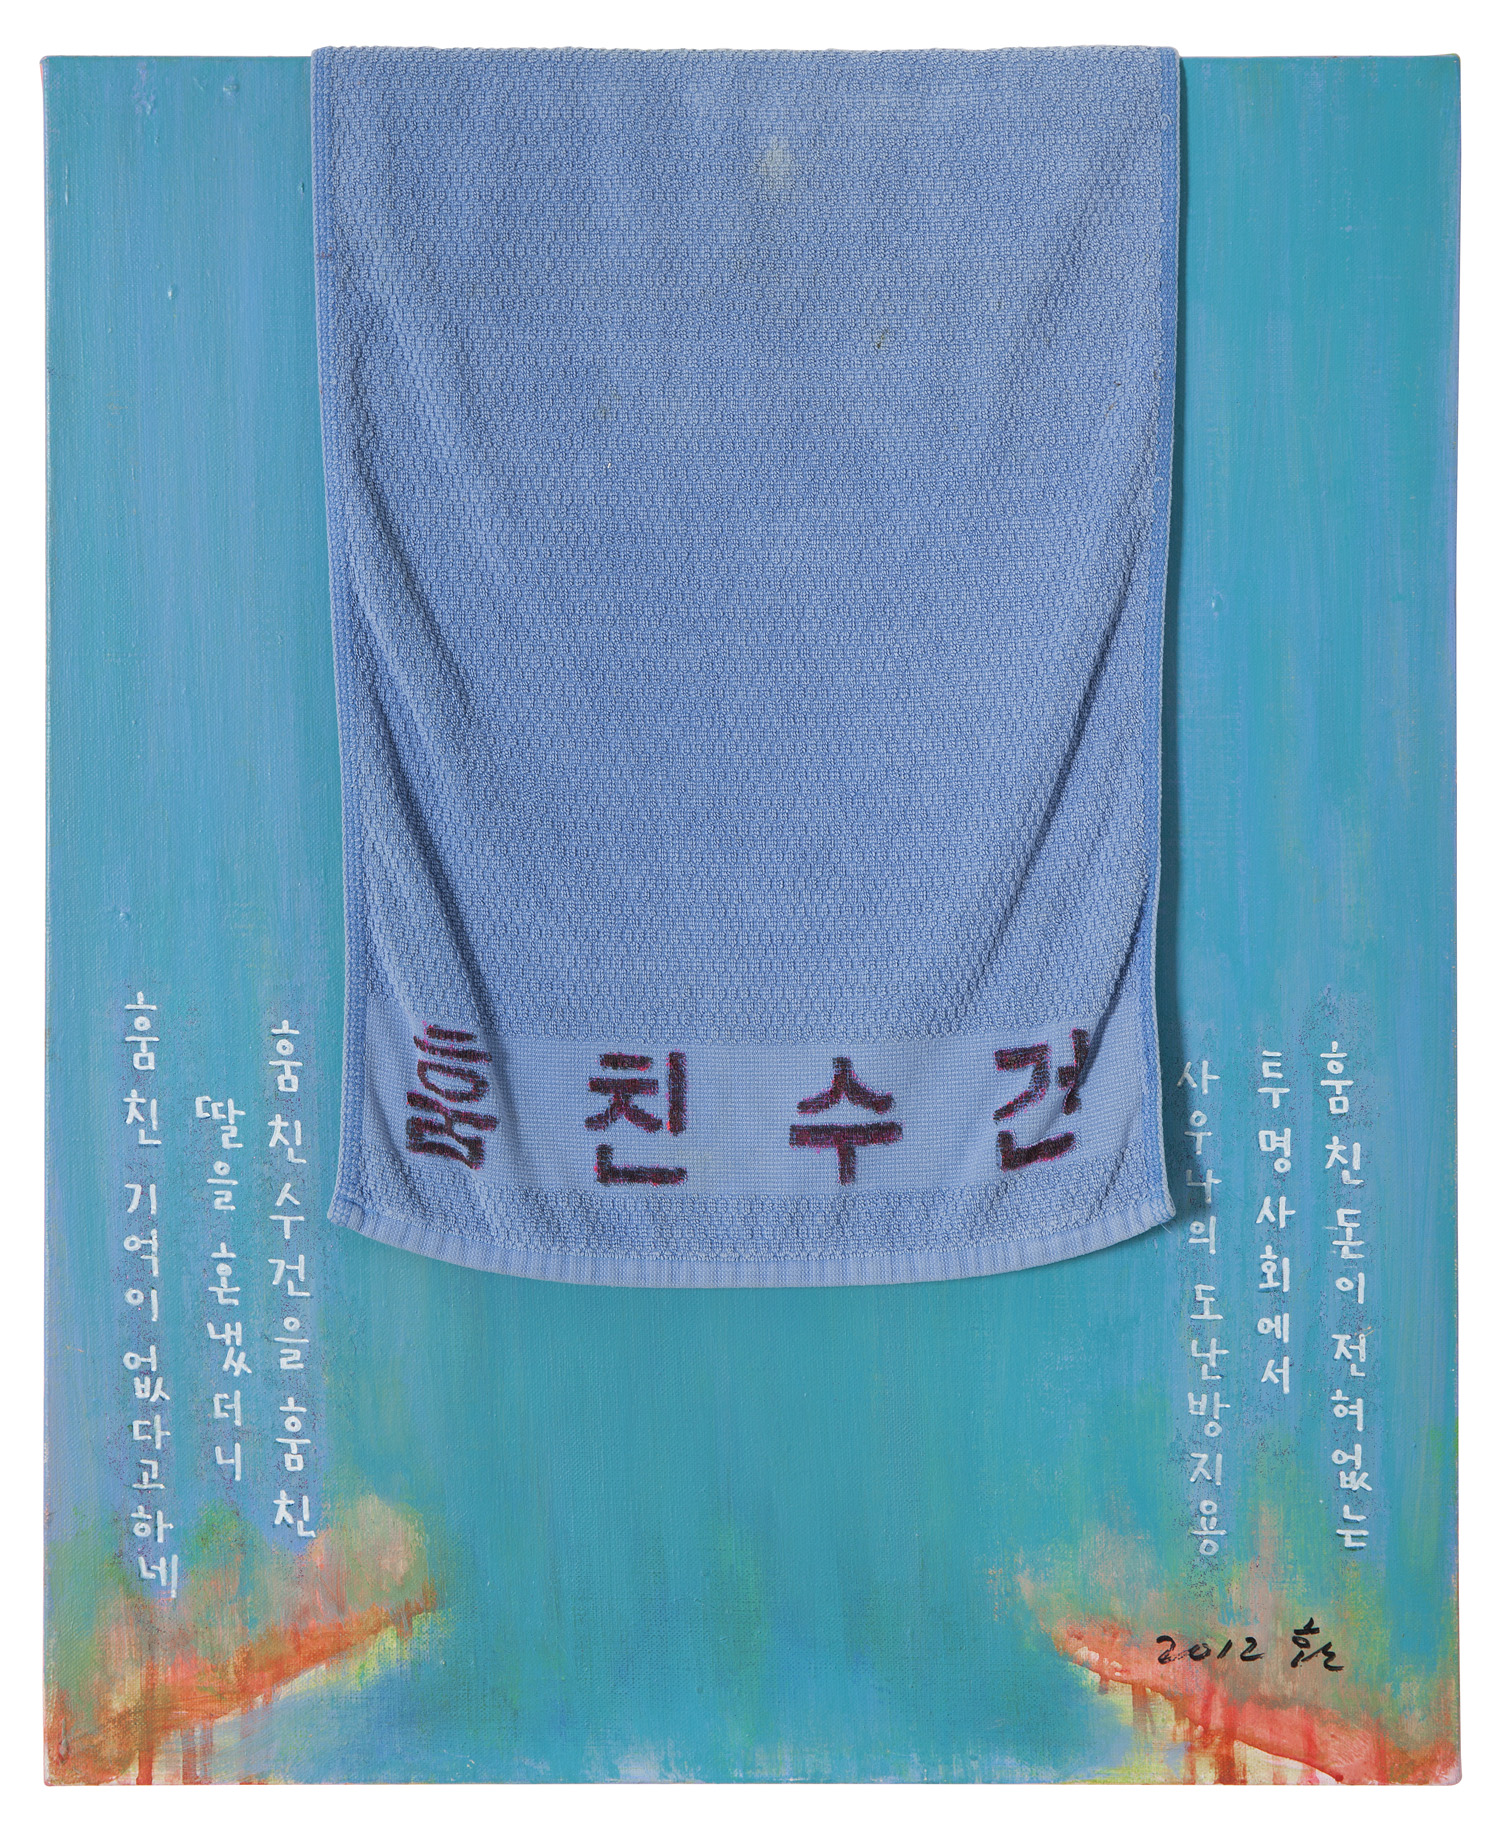 A Stolen Towel, 2012, Acrylic and towel on canvas, 65x53.2cm